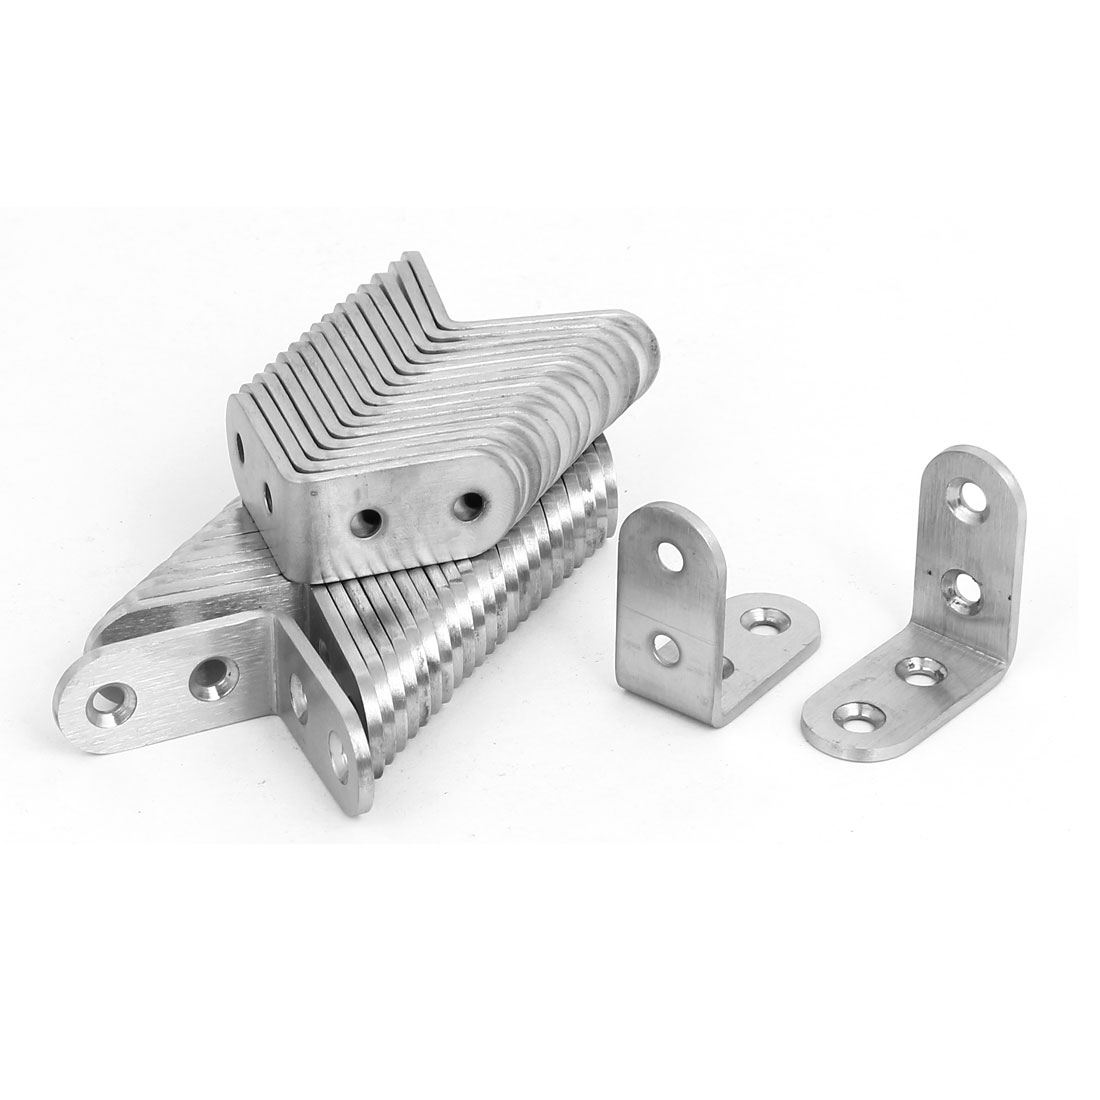 40mmx40mmx3mm Stainless Steel L Shaped Angle Brackets Shelf Supports 50pcs